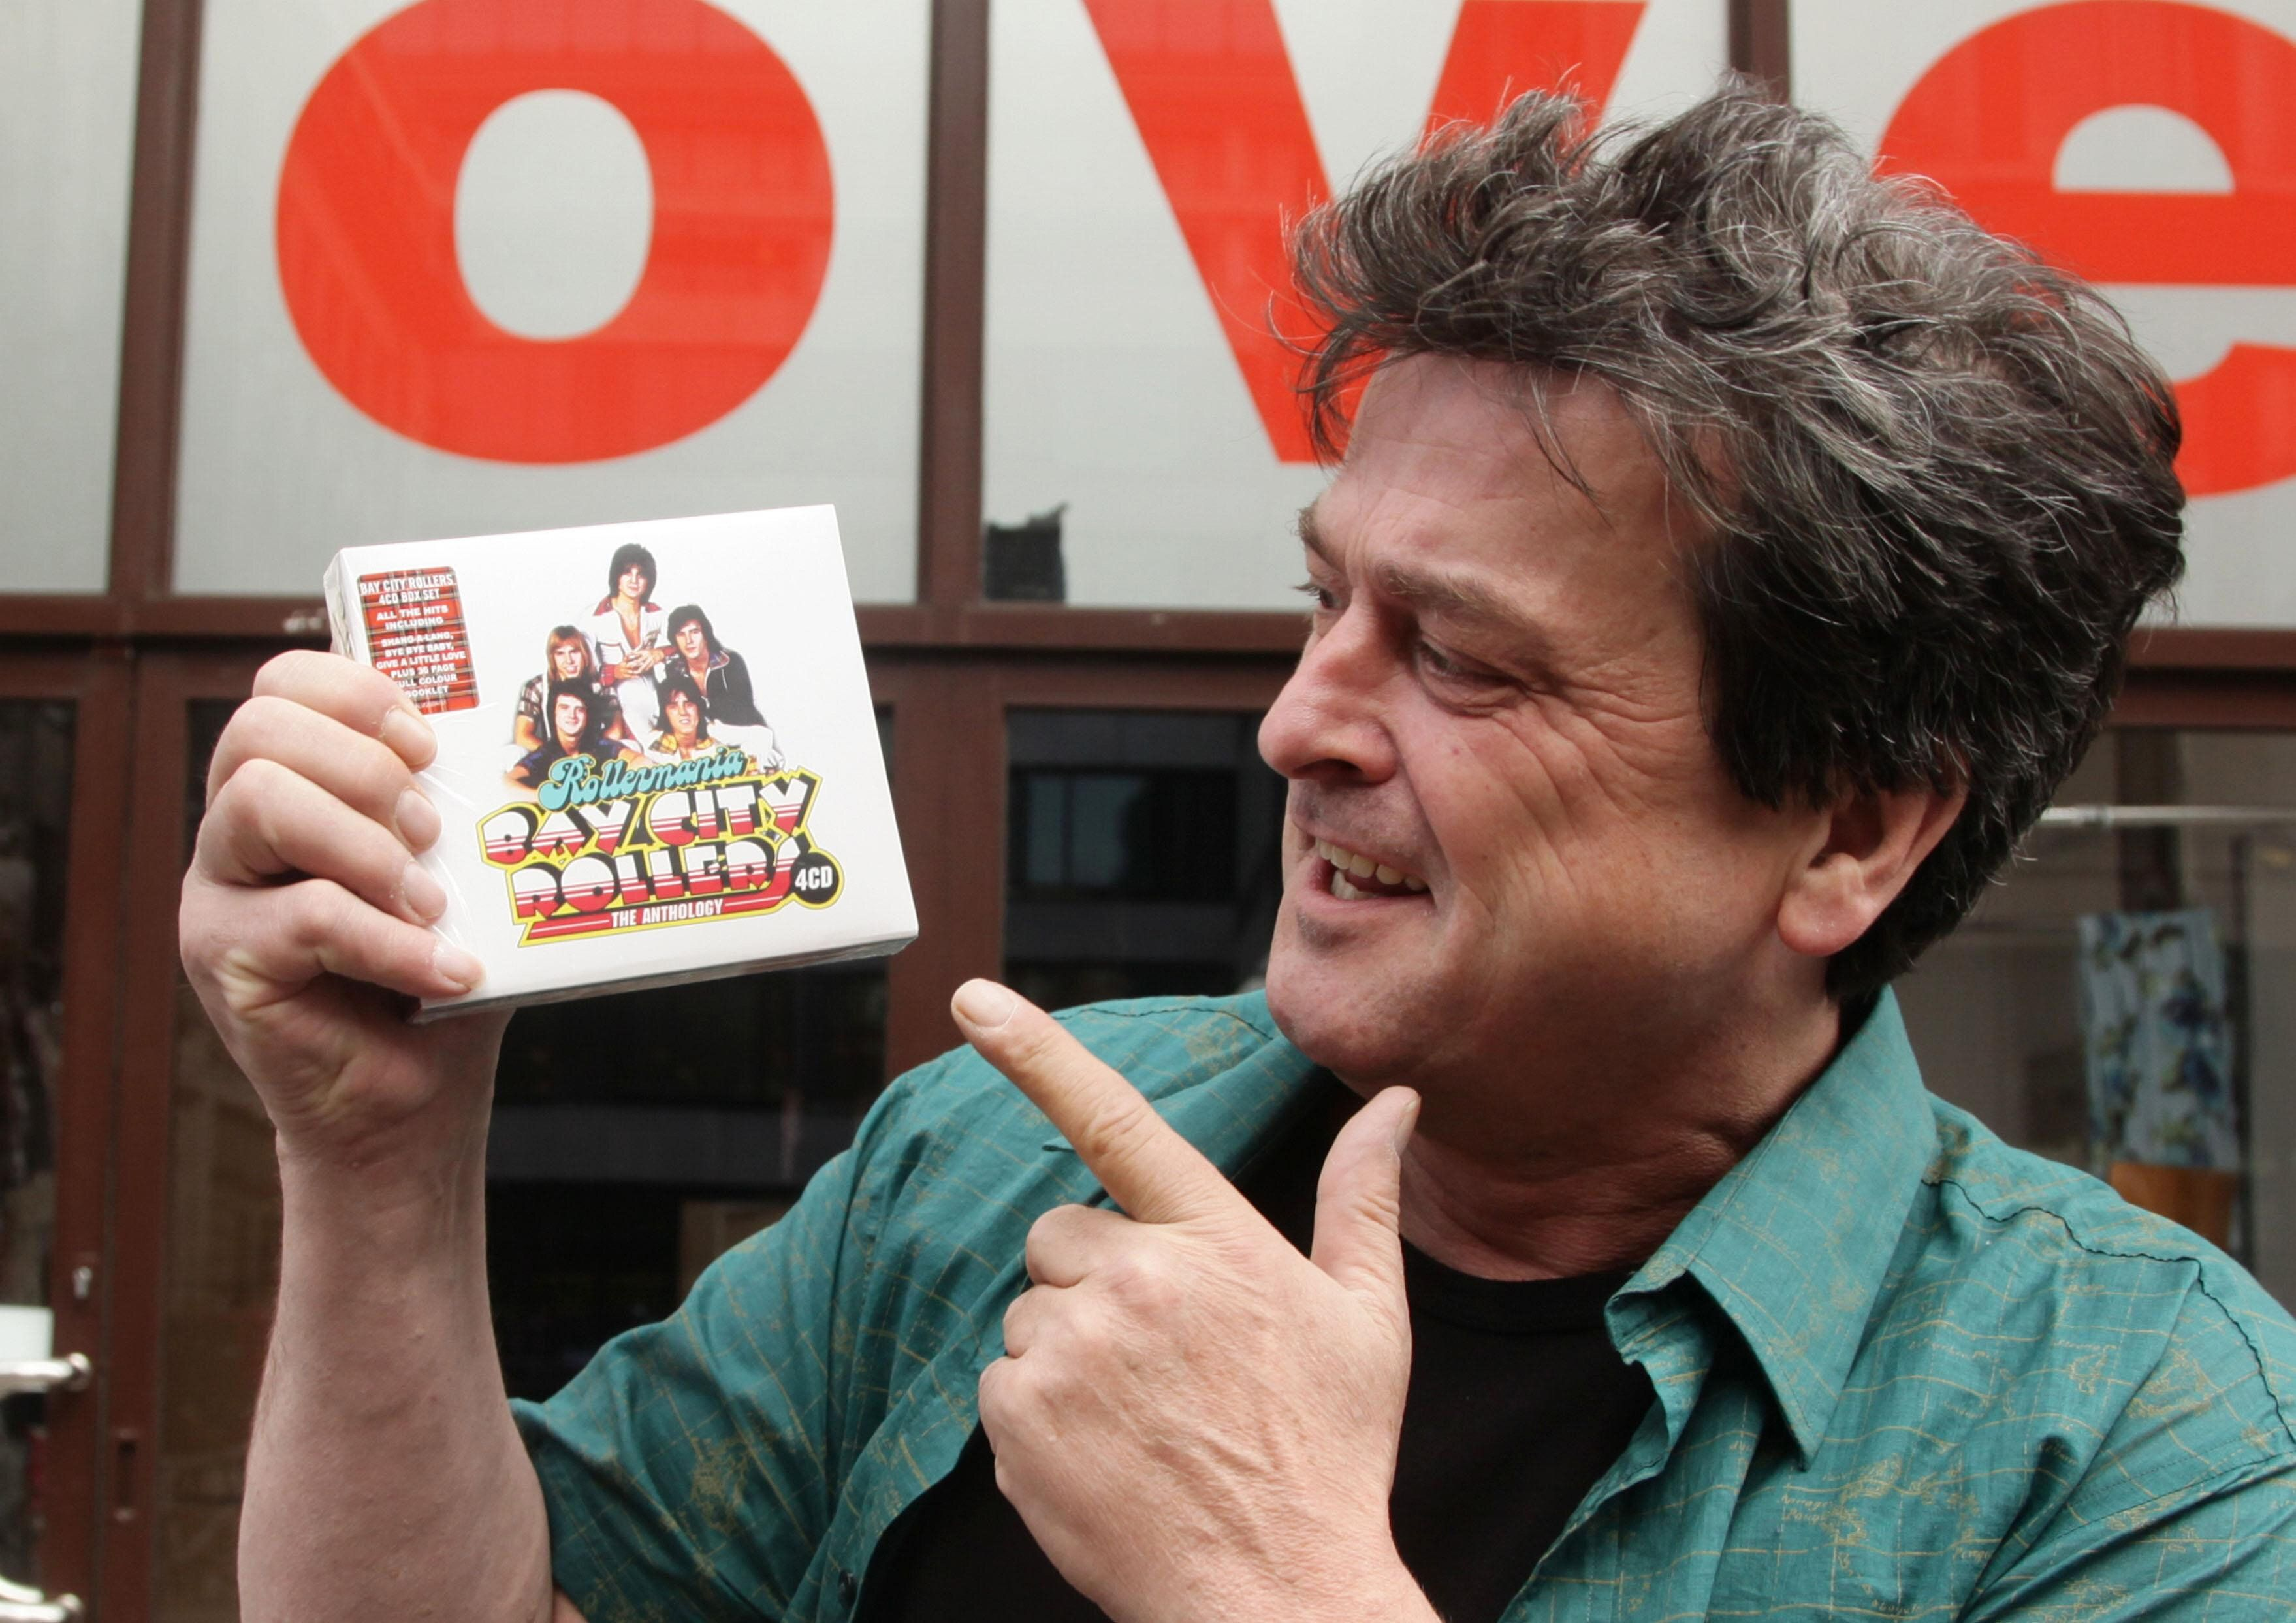 Les Mckeown Former Bay City Rollers Singer Dead At 65 247 News Around The World